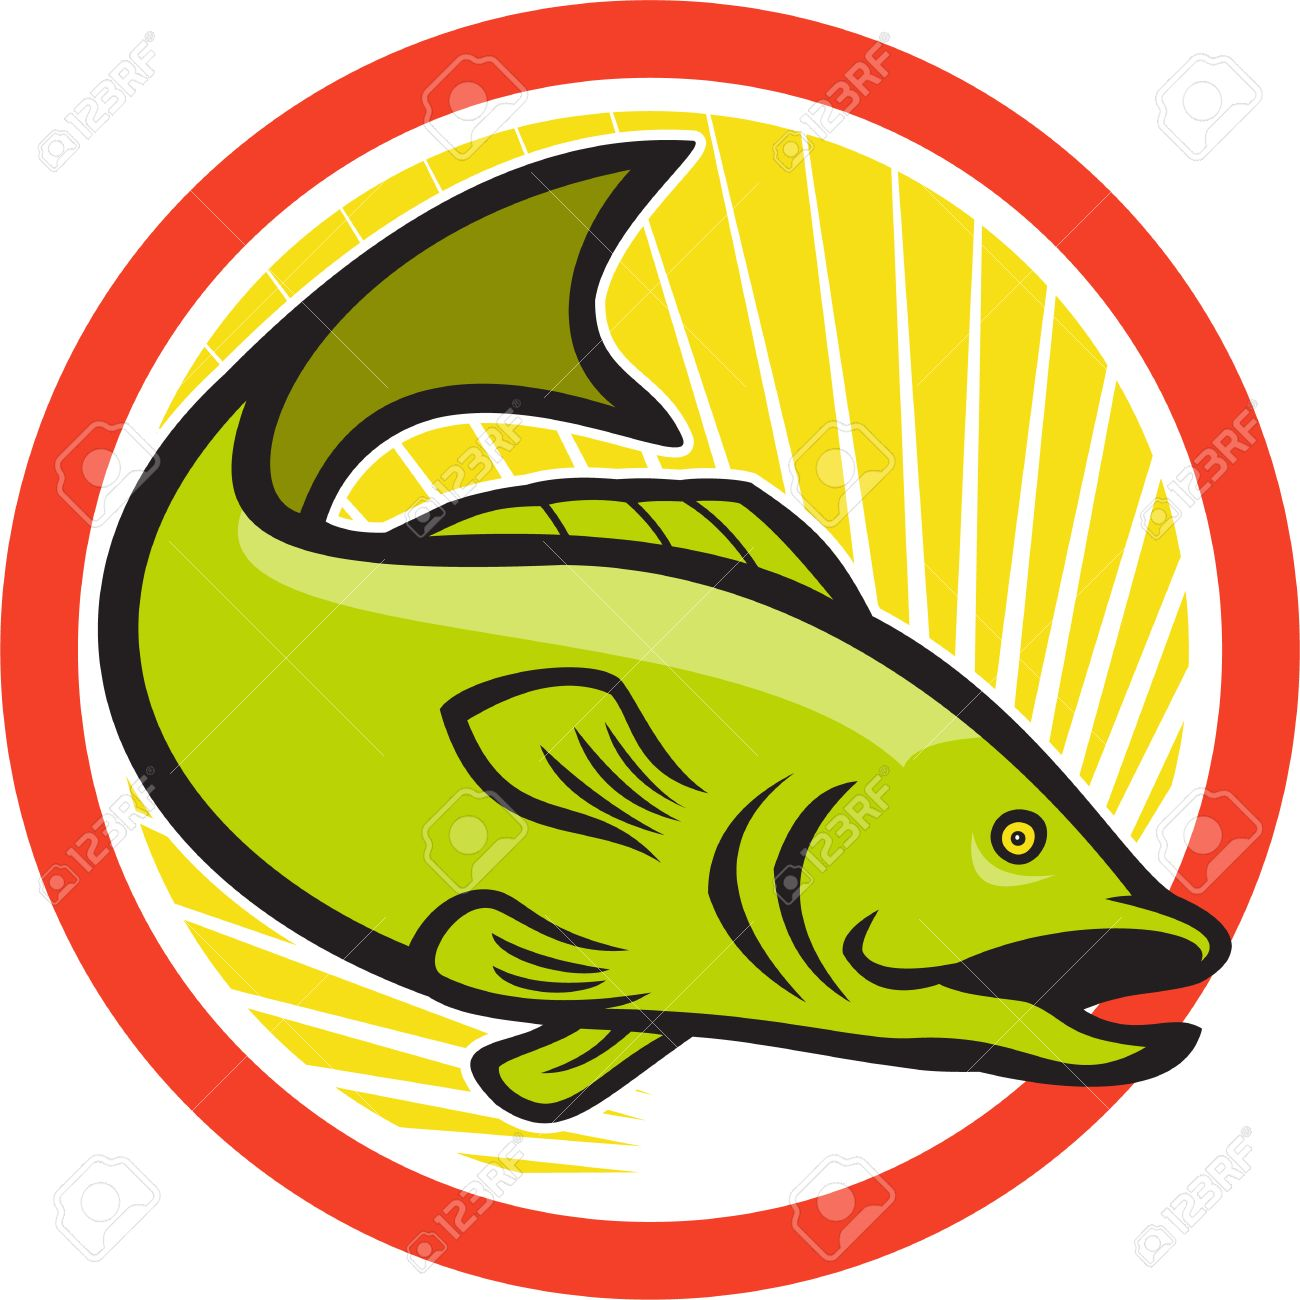 Freshwater fish jumping - Bass Fish Jumping Illustration Of A Largemouth Bass Fish Jumping Done In Cartoon Style On